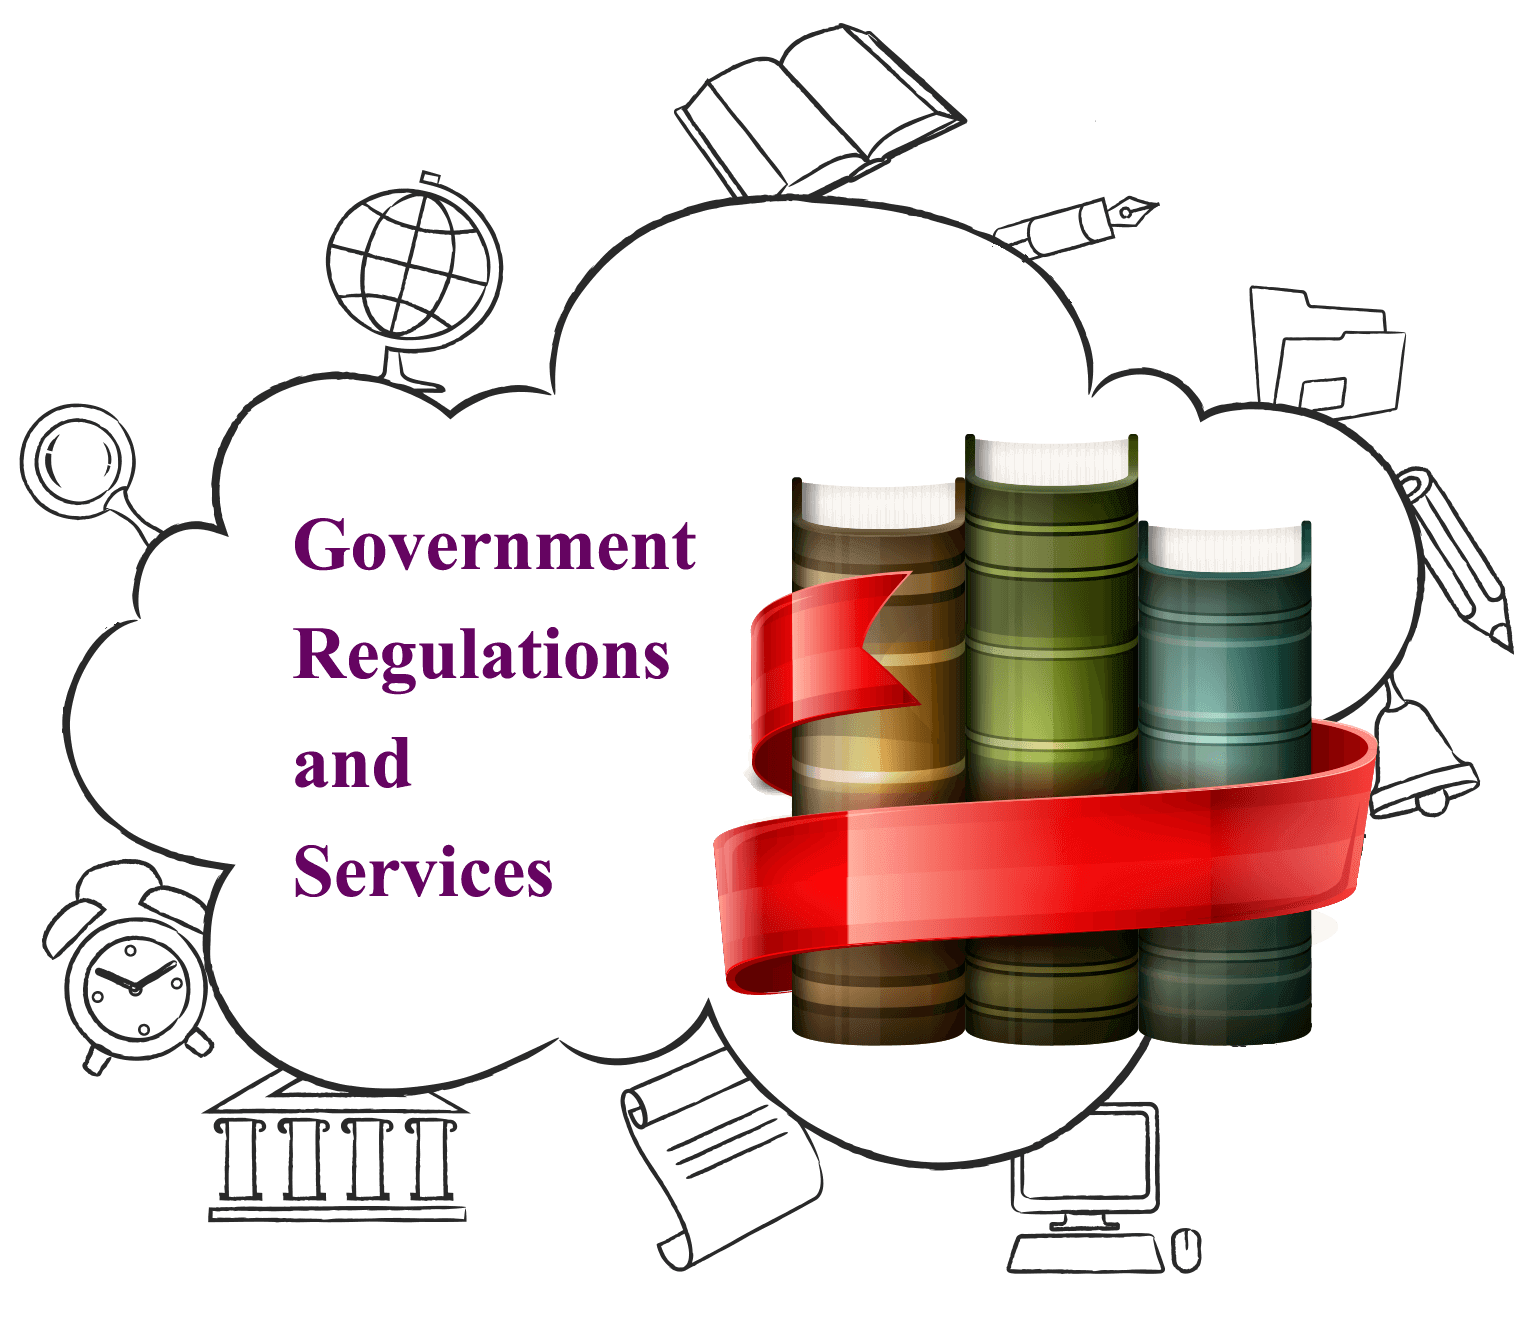 tpa employer regulations and services